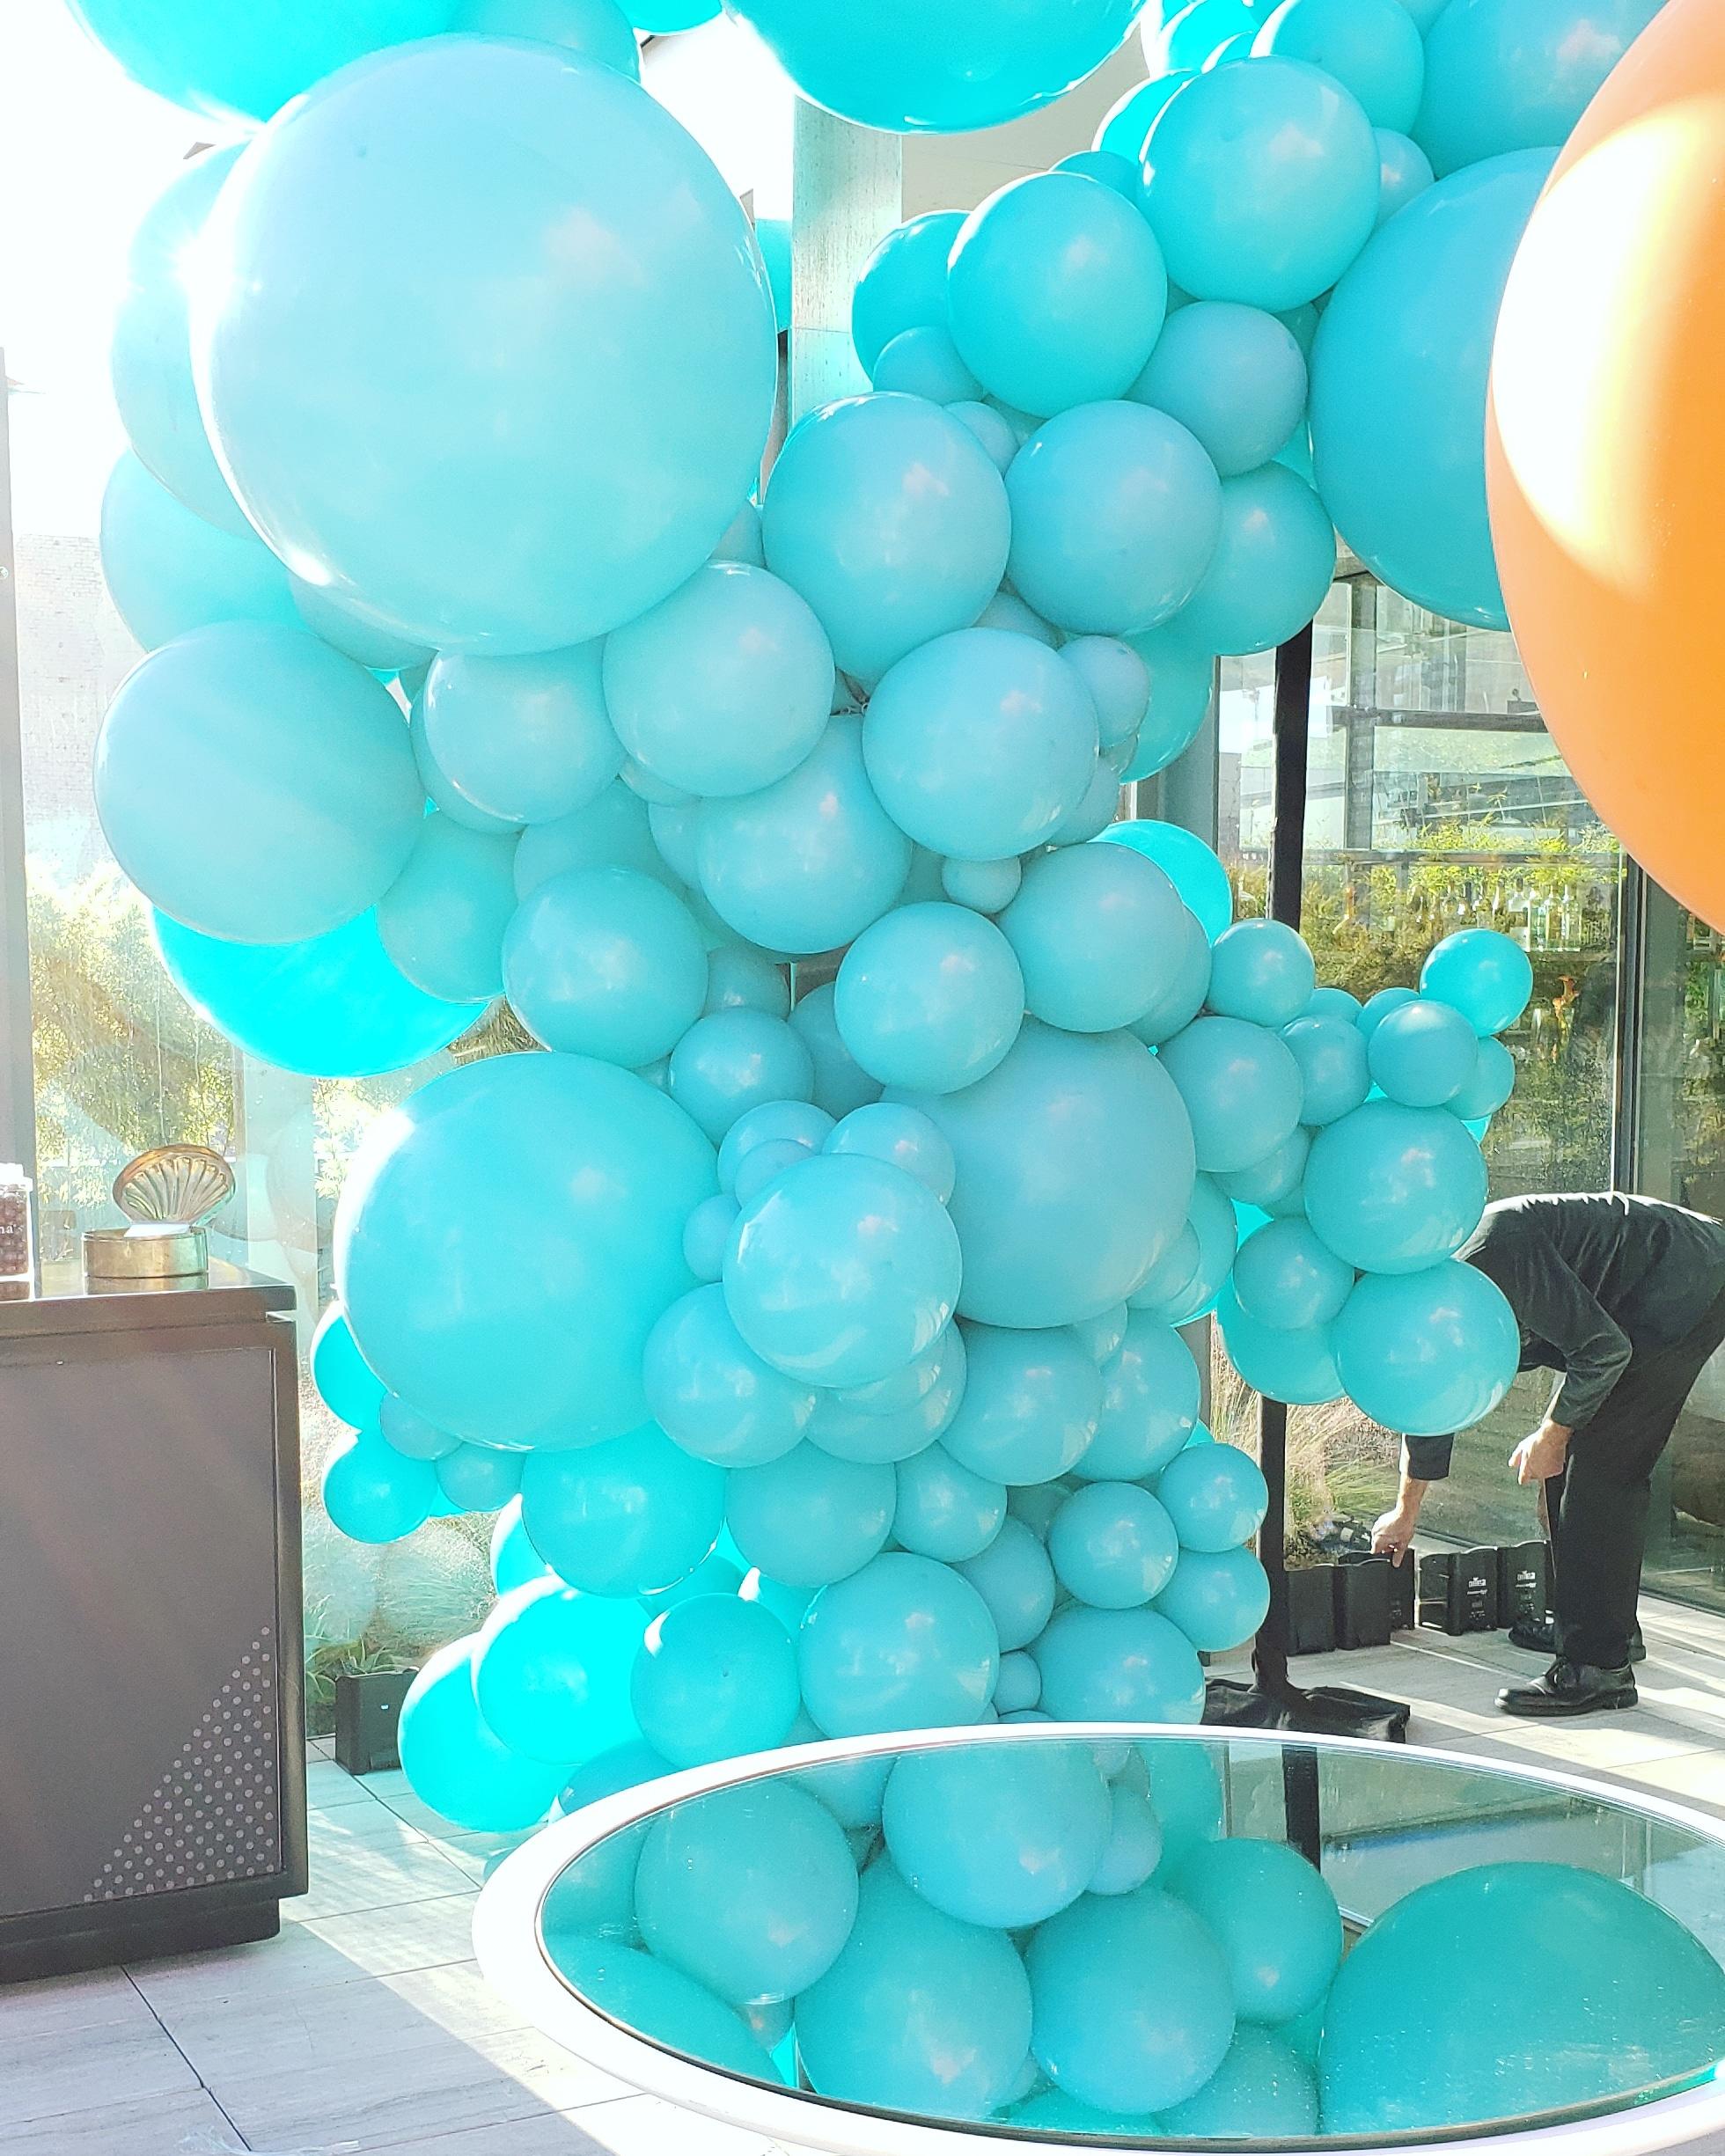 Party Balloon Art - Balloon Garland SF LA Nationwide - Zim Balloons.jpg